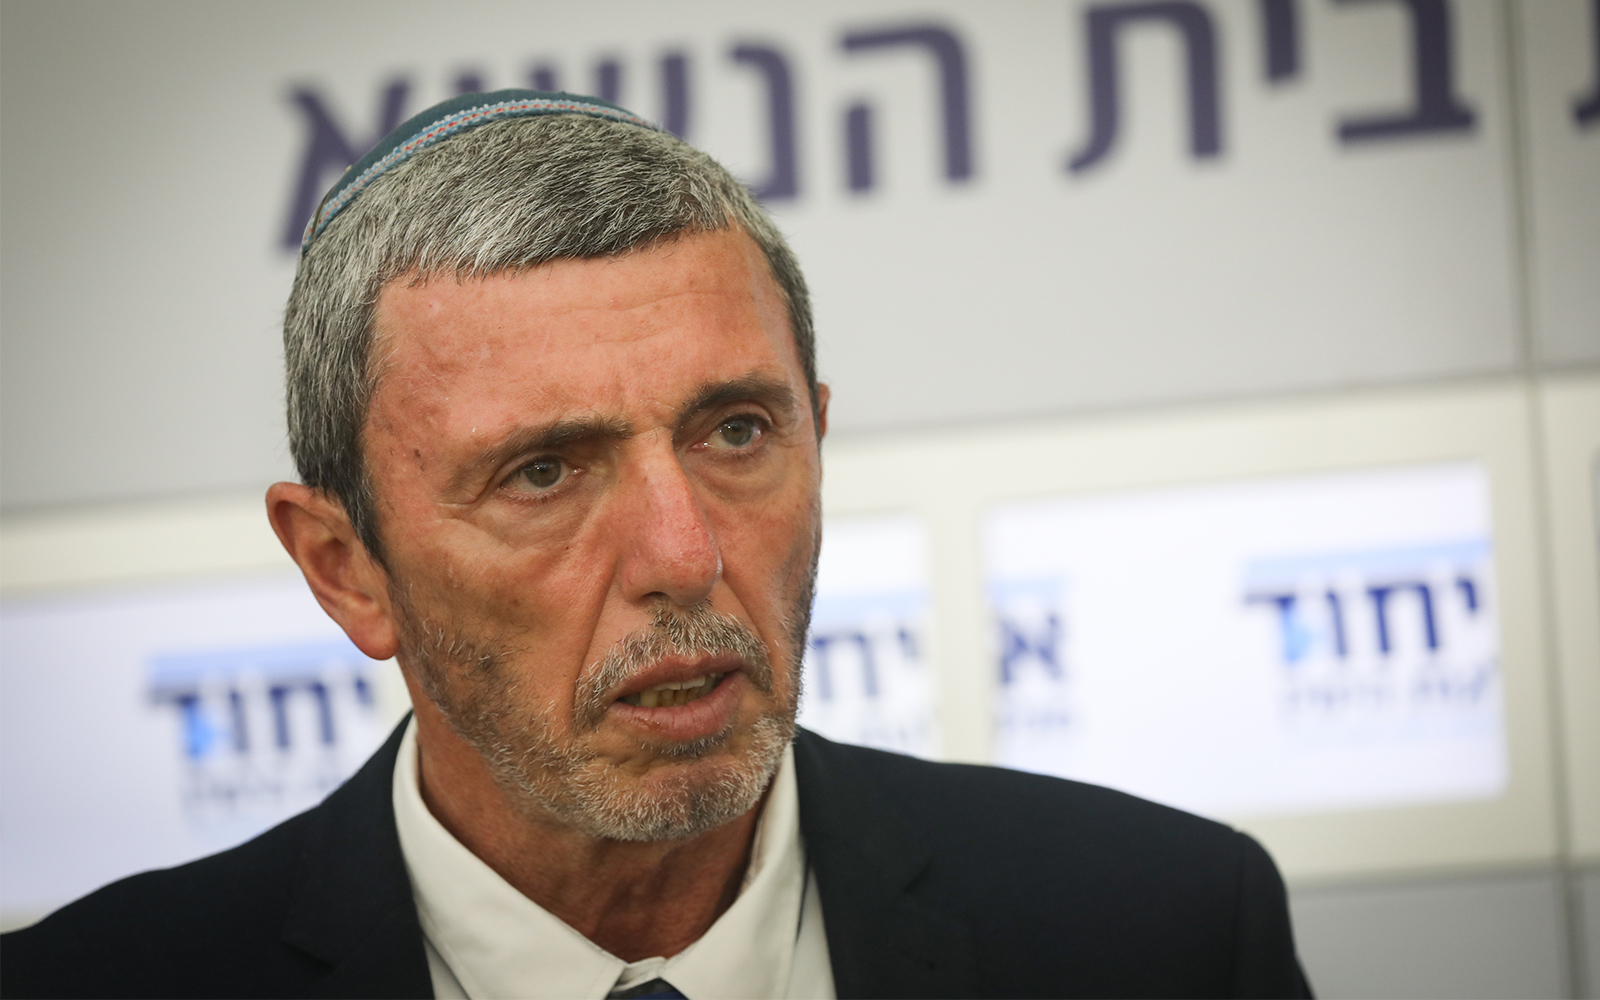 Israel education minister defends 'gay conversion therapy'